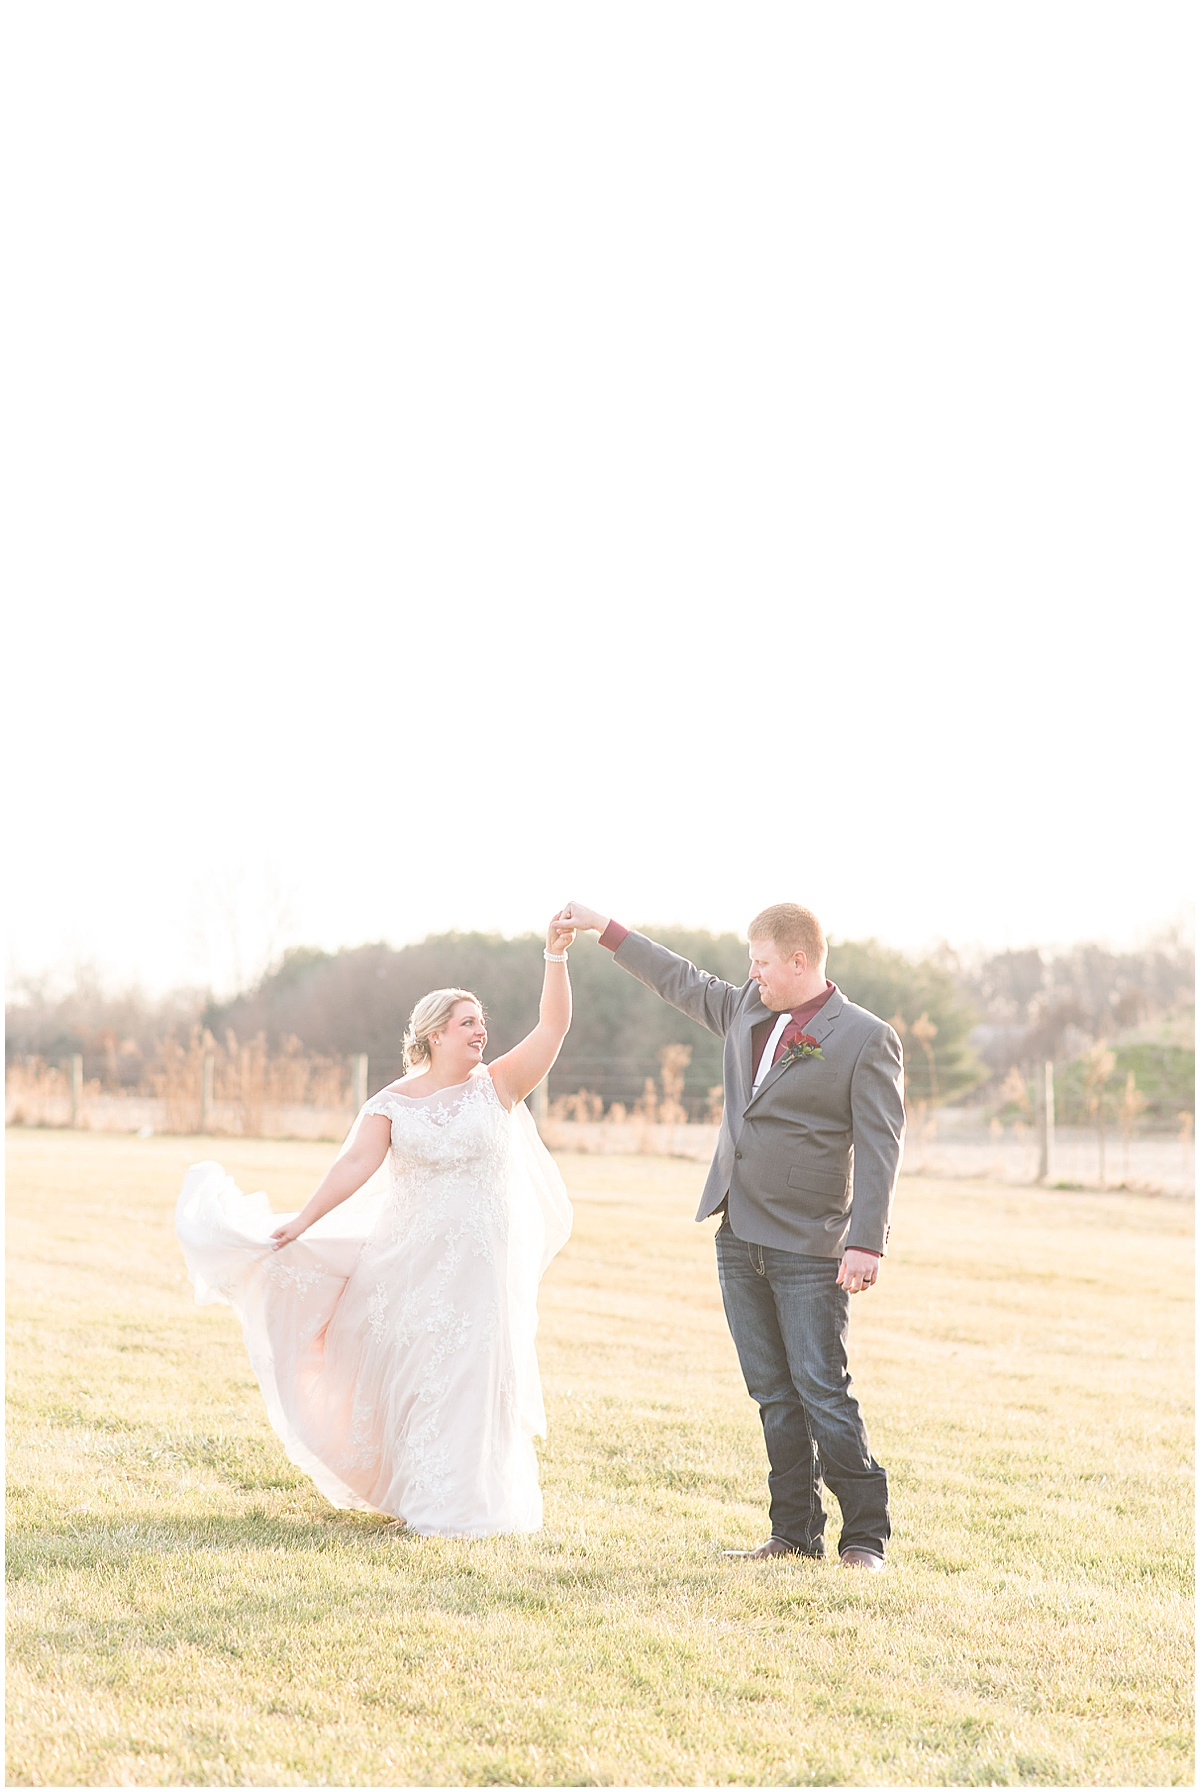 Wedding in Rensselaer, Indiana photographed by Victoria Rayburn Photography